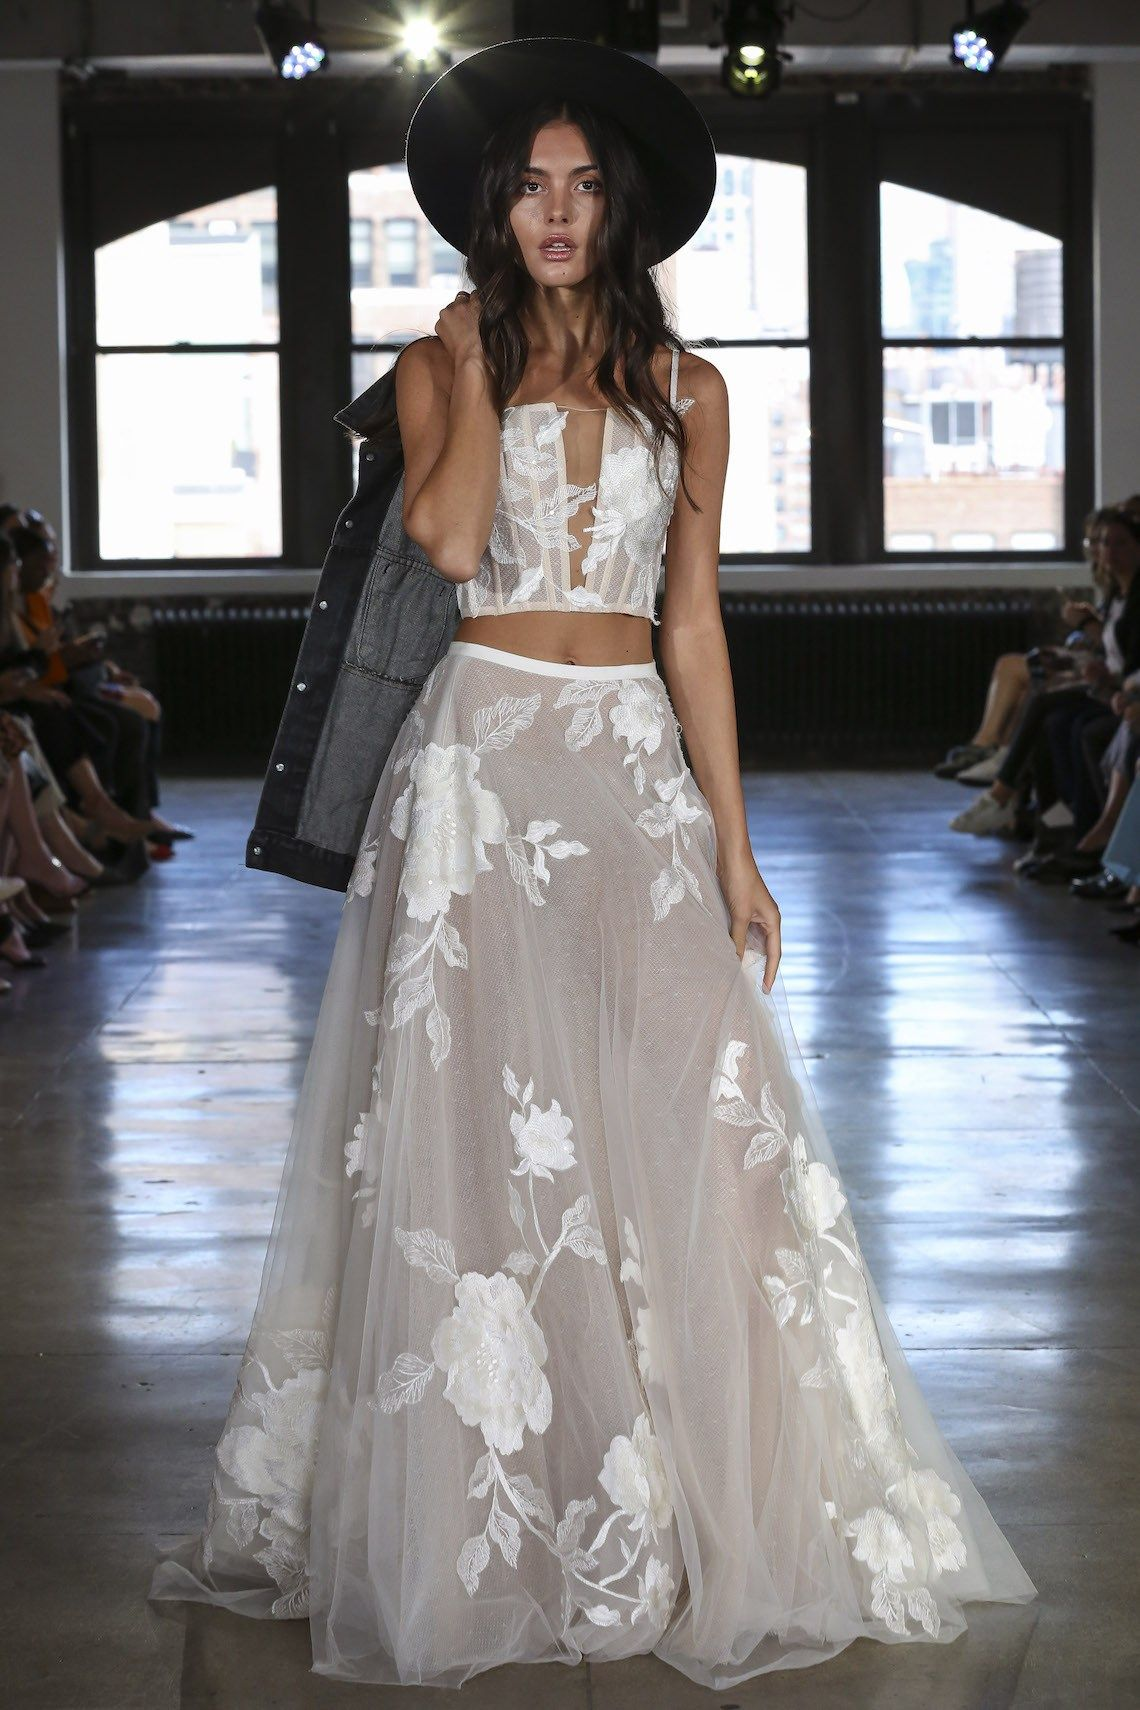 Wattersu three dreamy new wedding dress collections will make you